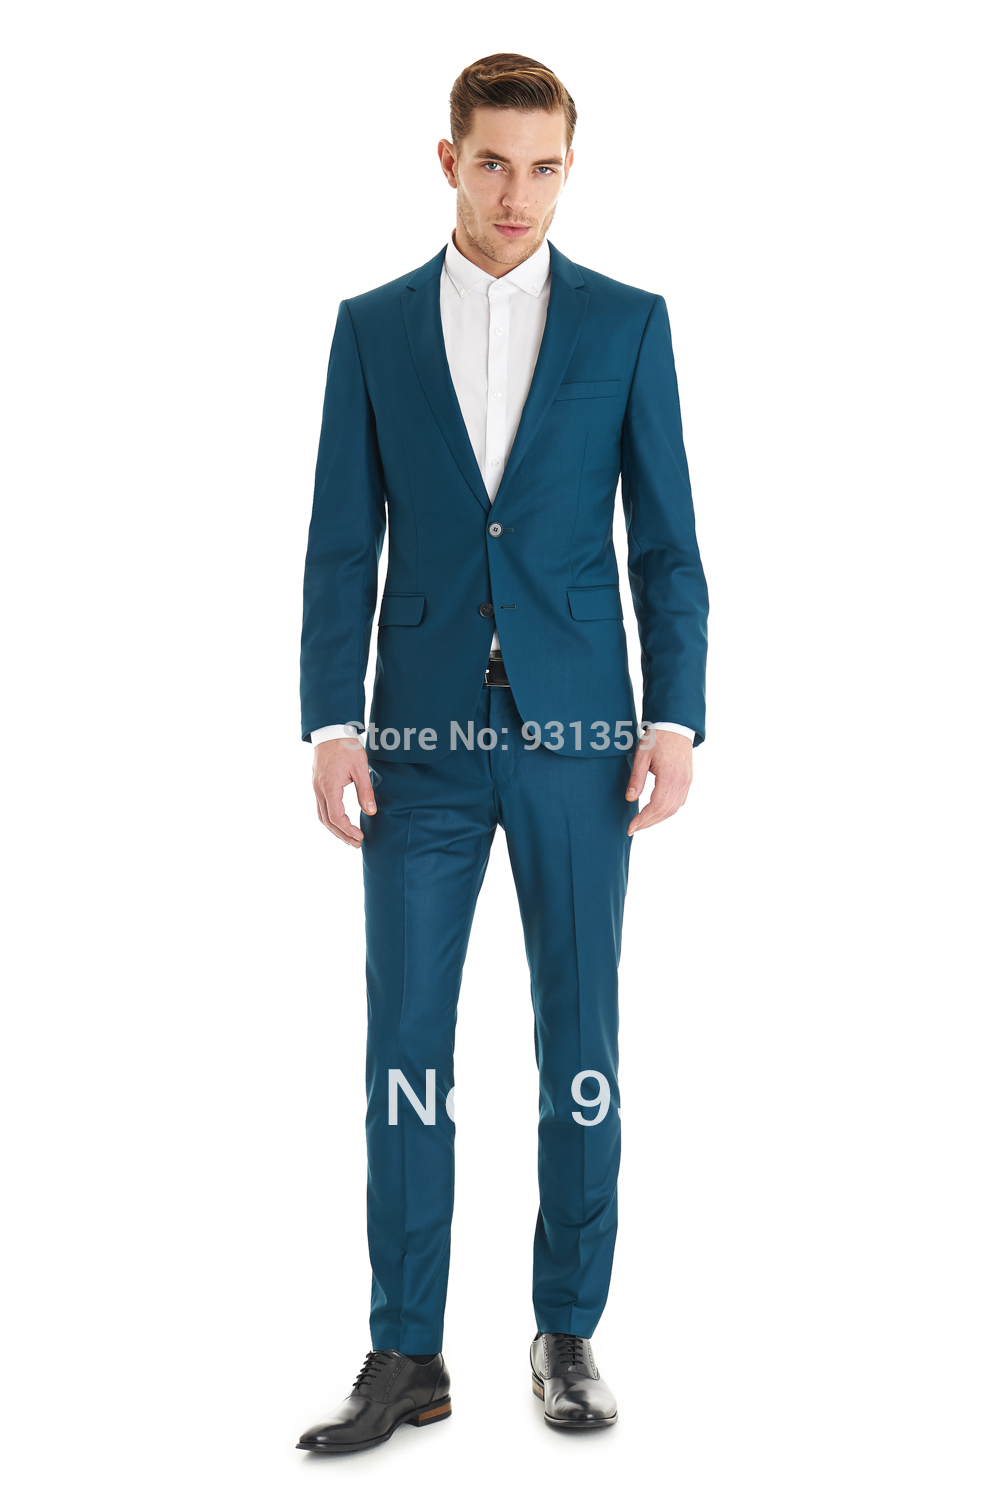 Aliexpress.com : Buy Nice Quality Customized Business Mens Suits